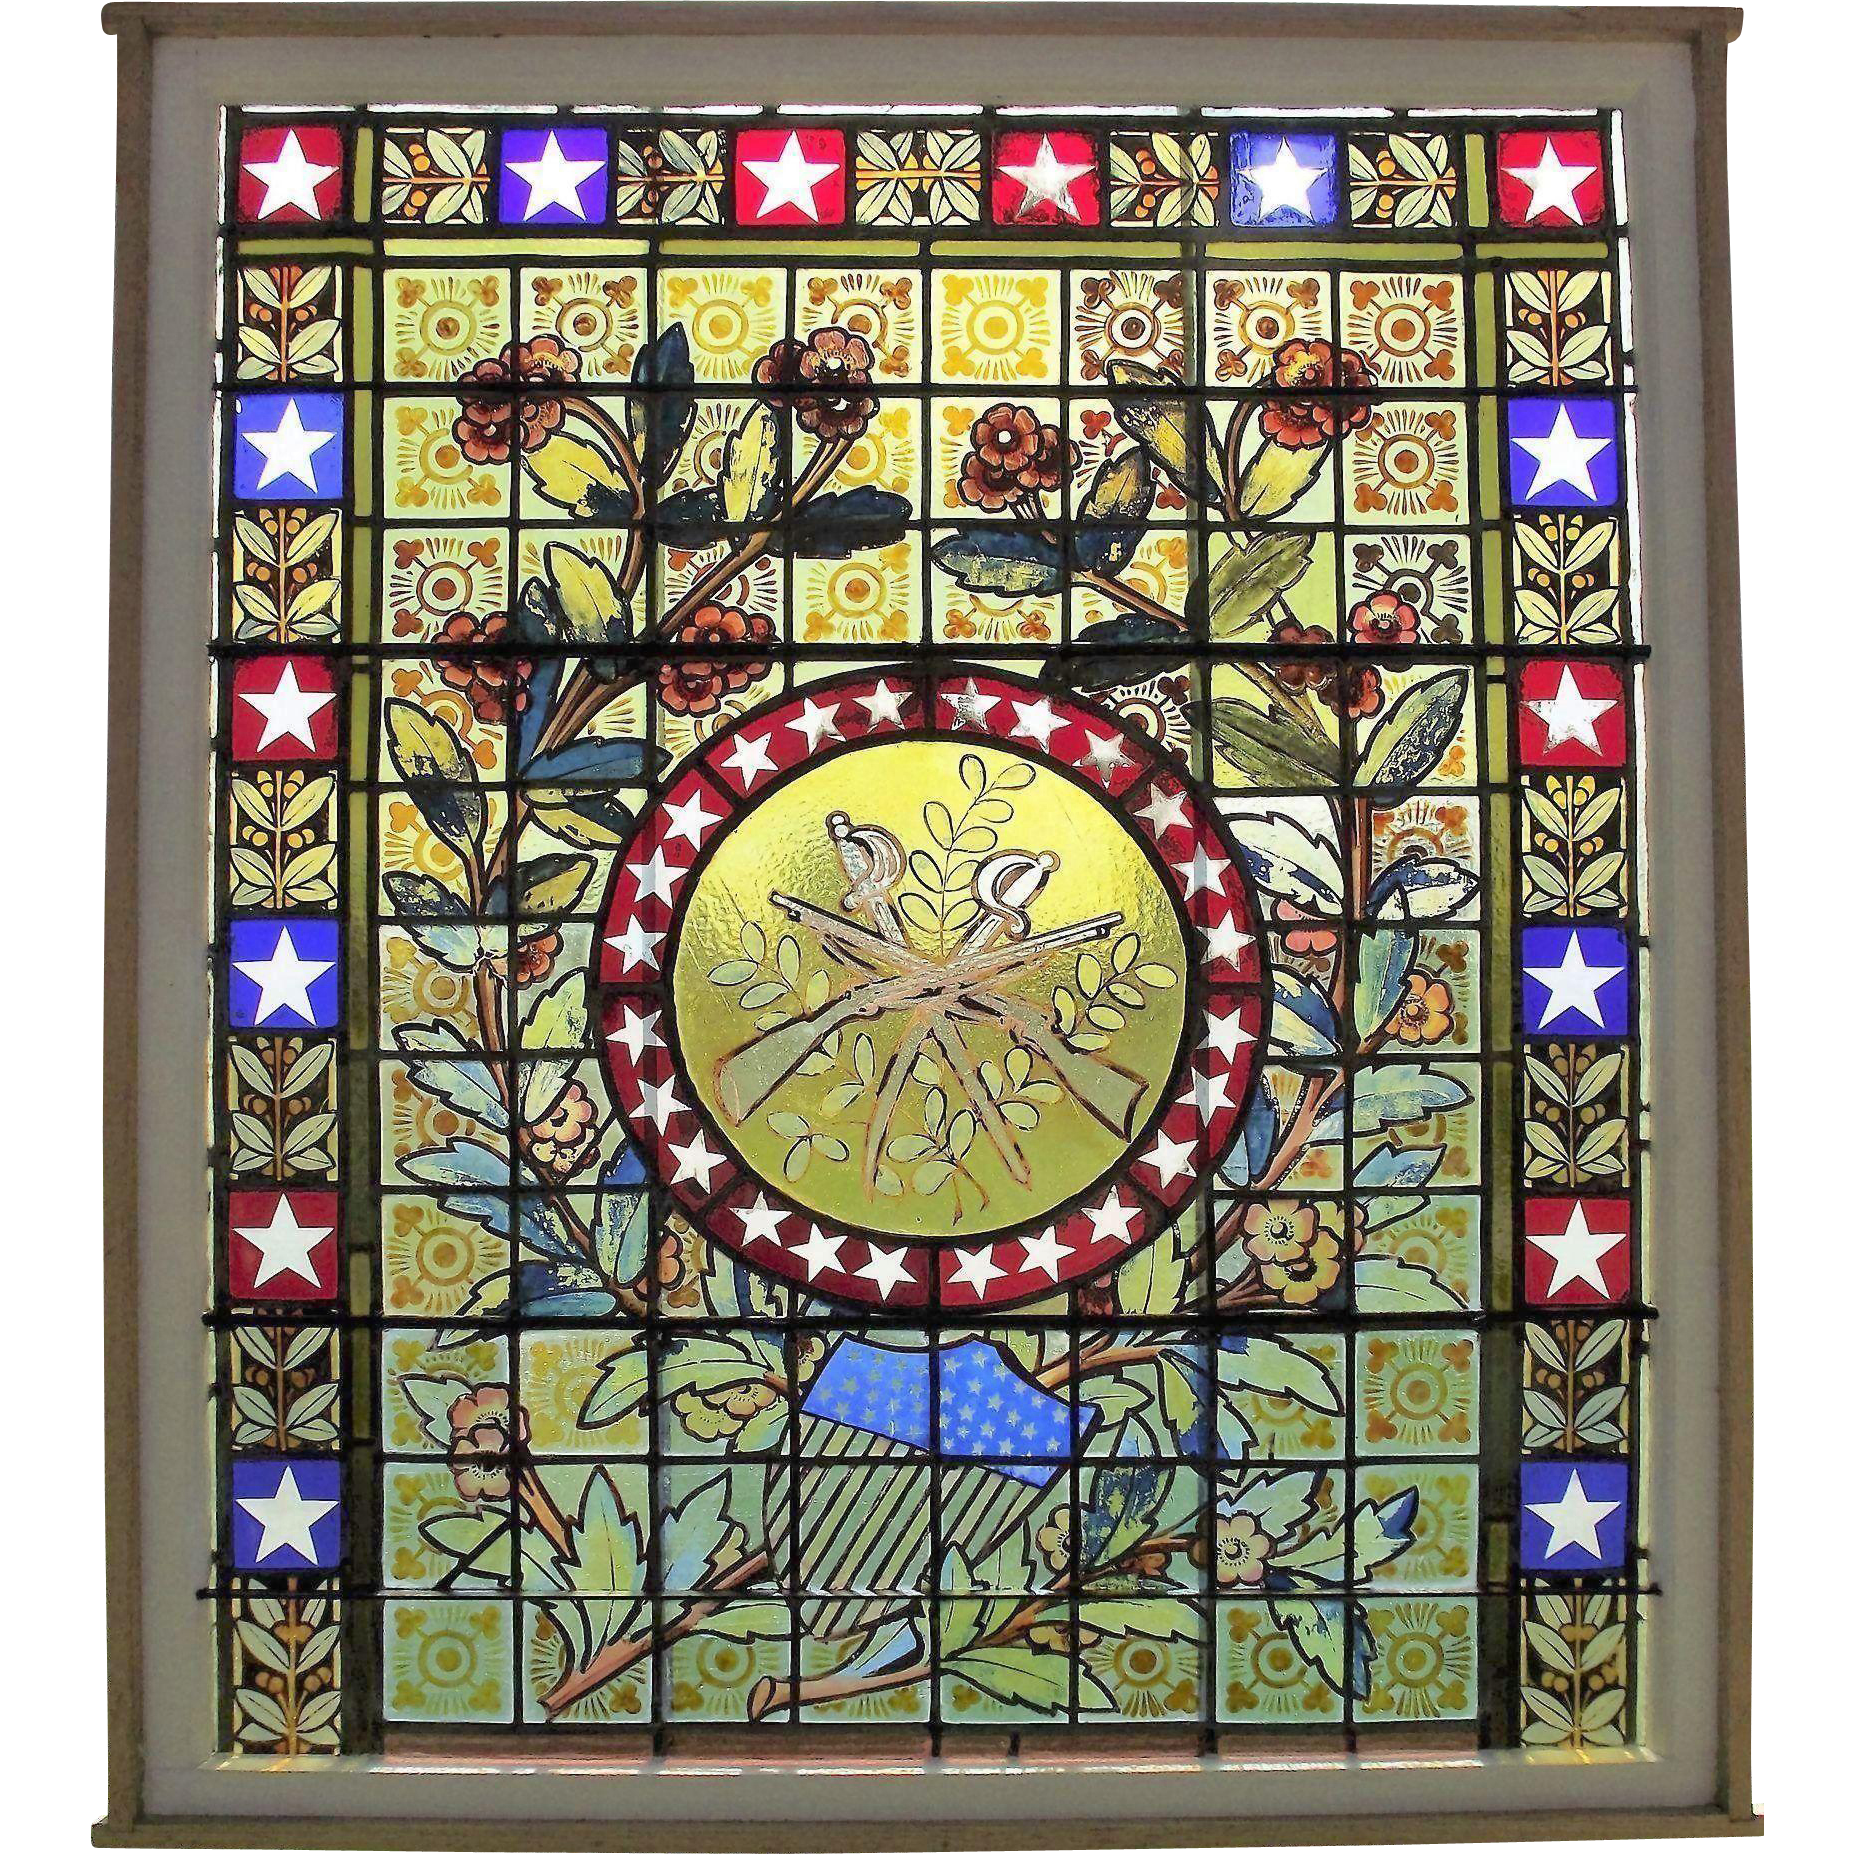 Civil War Peace Memorial Stained Glass Window with 36 Star Union Shield, Victory Wreath, with Crossed Swords & Rifles in the Central Medallion Circa 1866 !!!